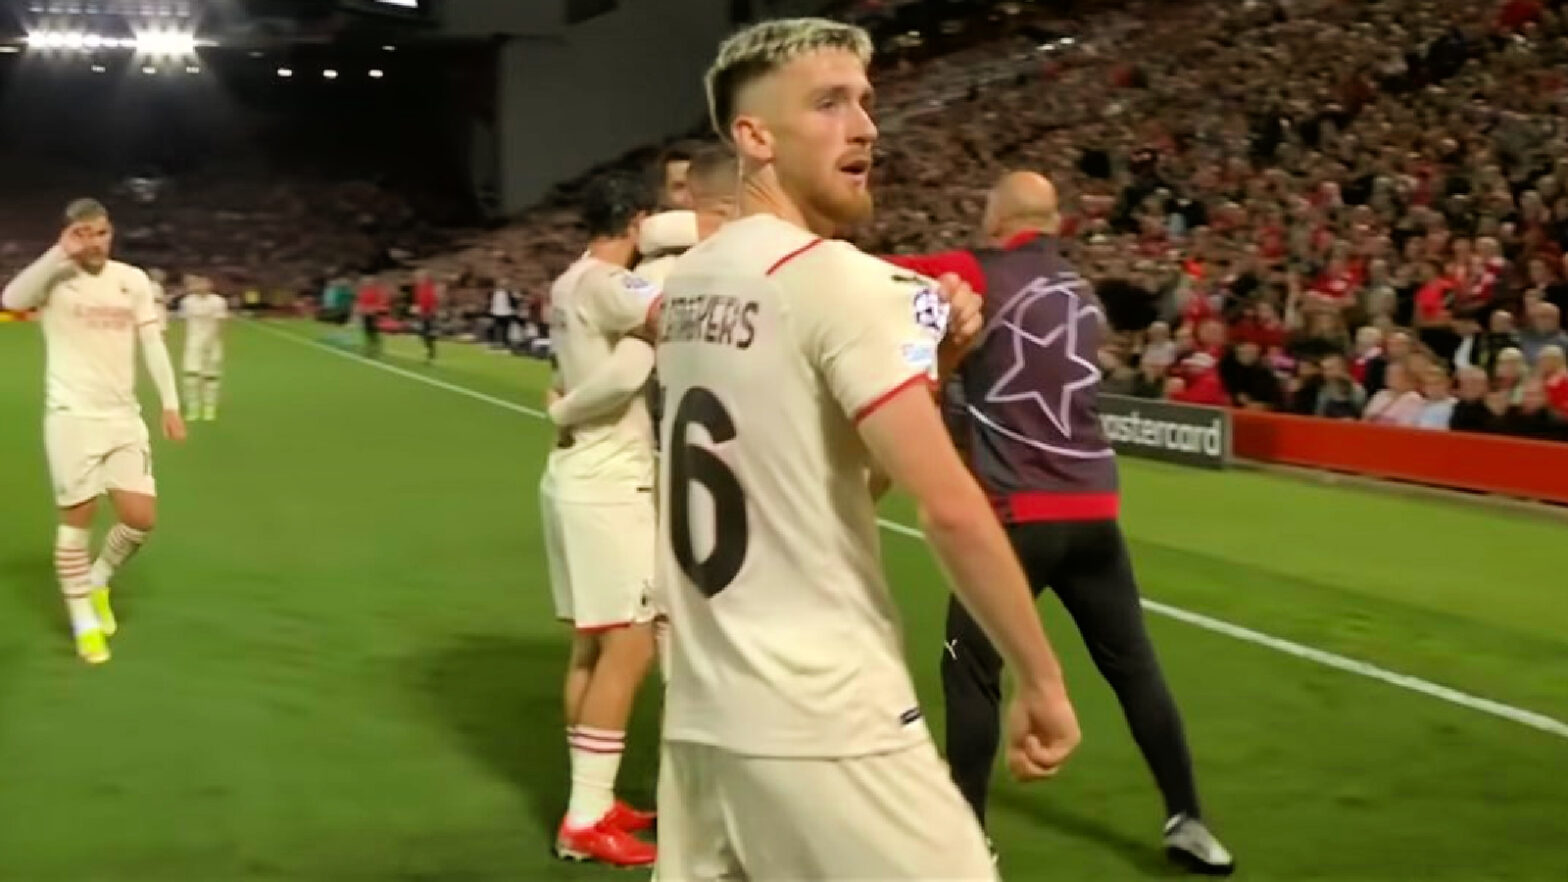 Alexis Saelemaekers points at the UCL badge against Liverpool